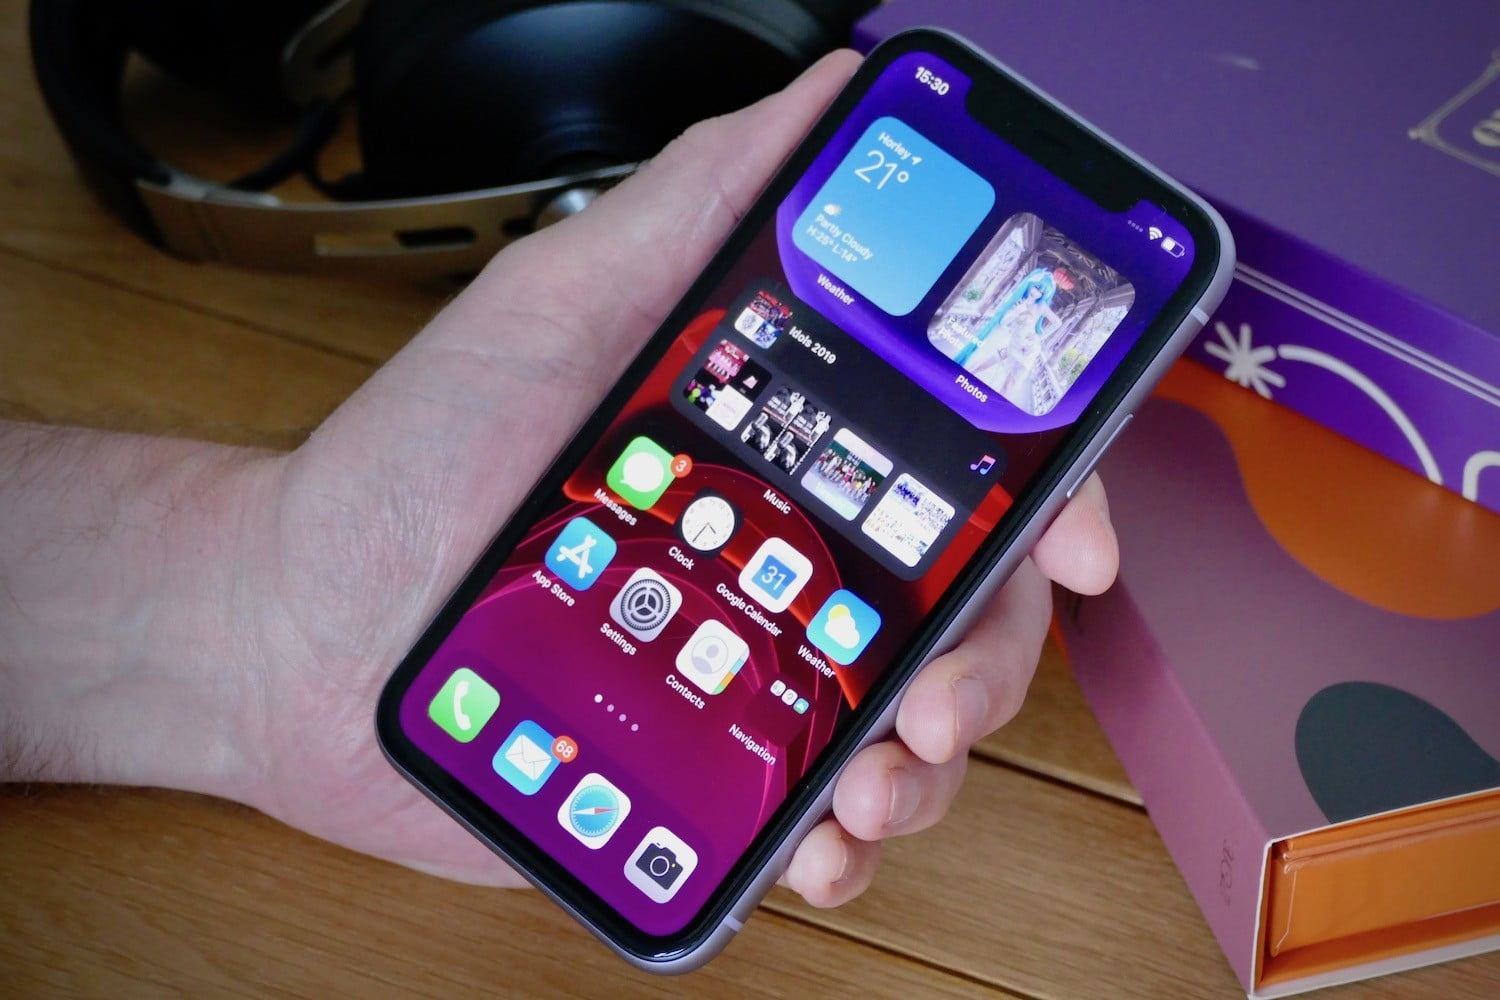 Fortnite Widget Ios 14 Ios 14 Hands On Home Screen Customization Is Here And Fun Digital Trends